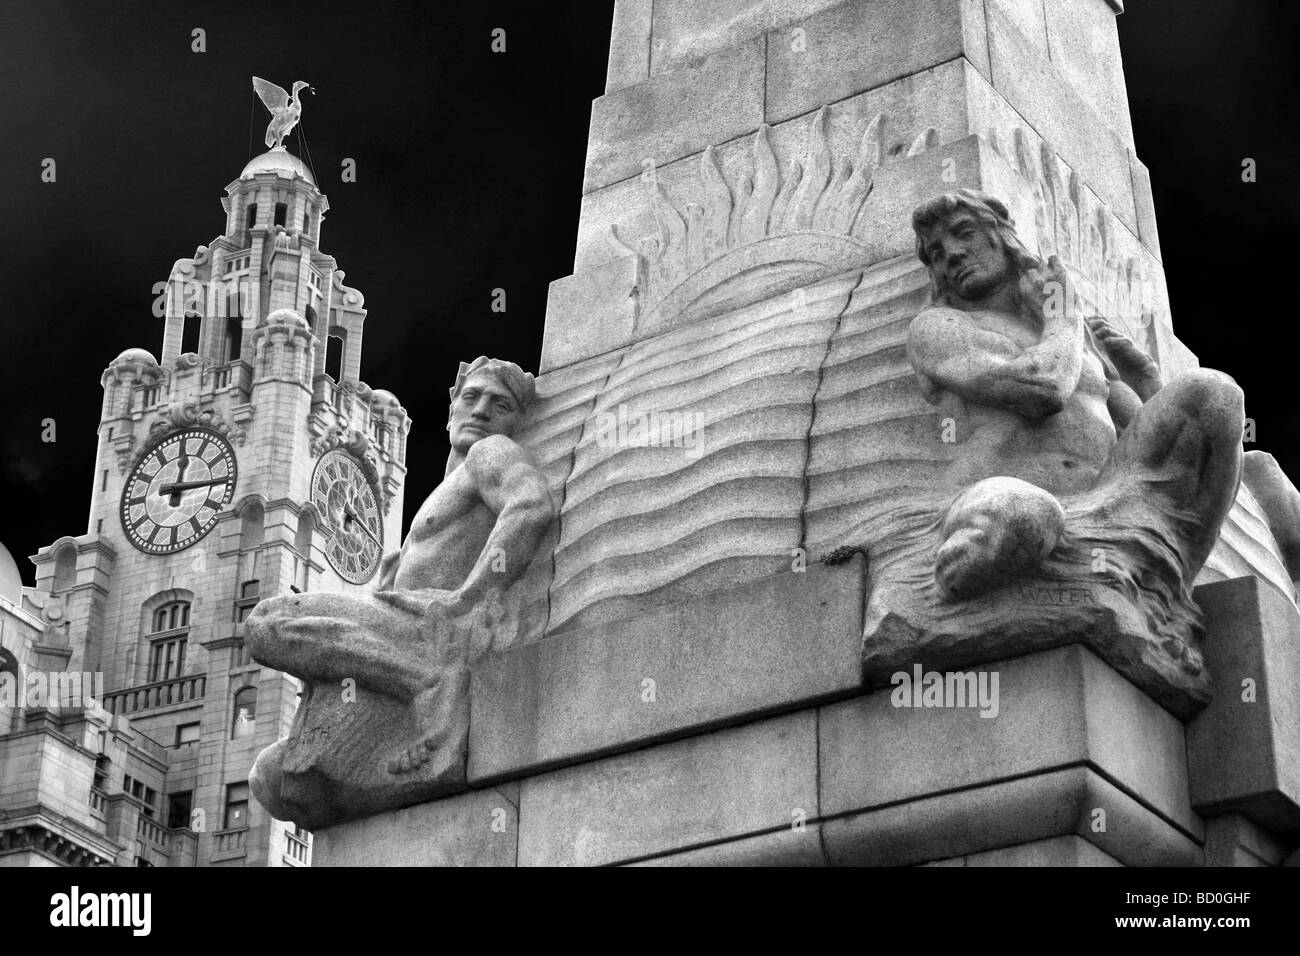 The Titanic Memorial And Liver Building At Pier Head, Liverpool, Merseyside, UK - Stock Image